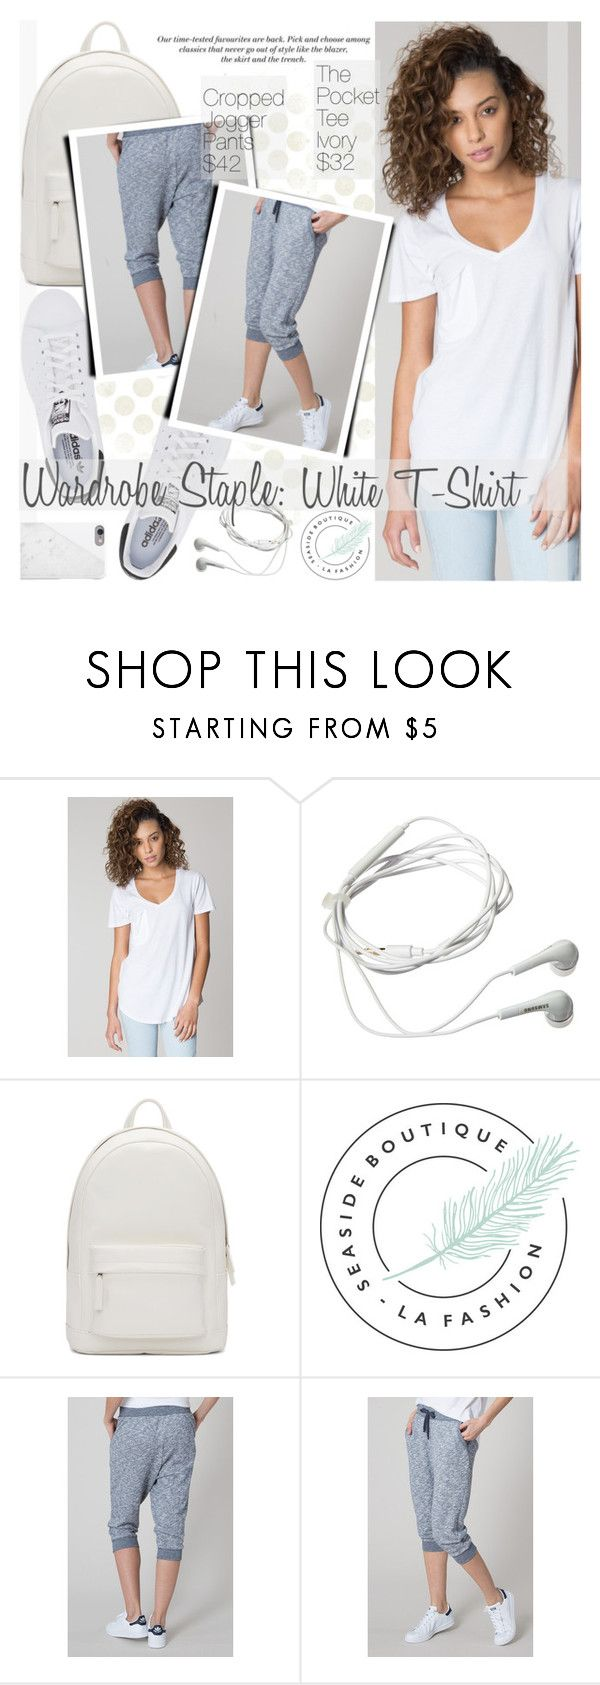 """Wardrobe Staple:White T-Shirt"" by pokadoll ❤ liked on Polyvore featuring Samsung, PB 0110, H&M, Native Union and seasideboutique"